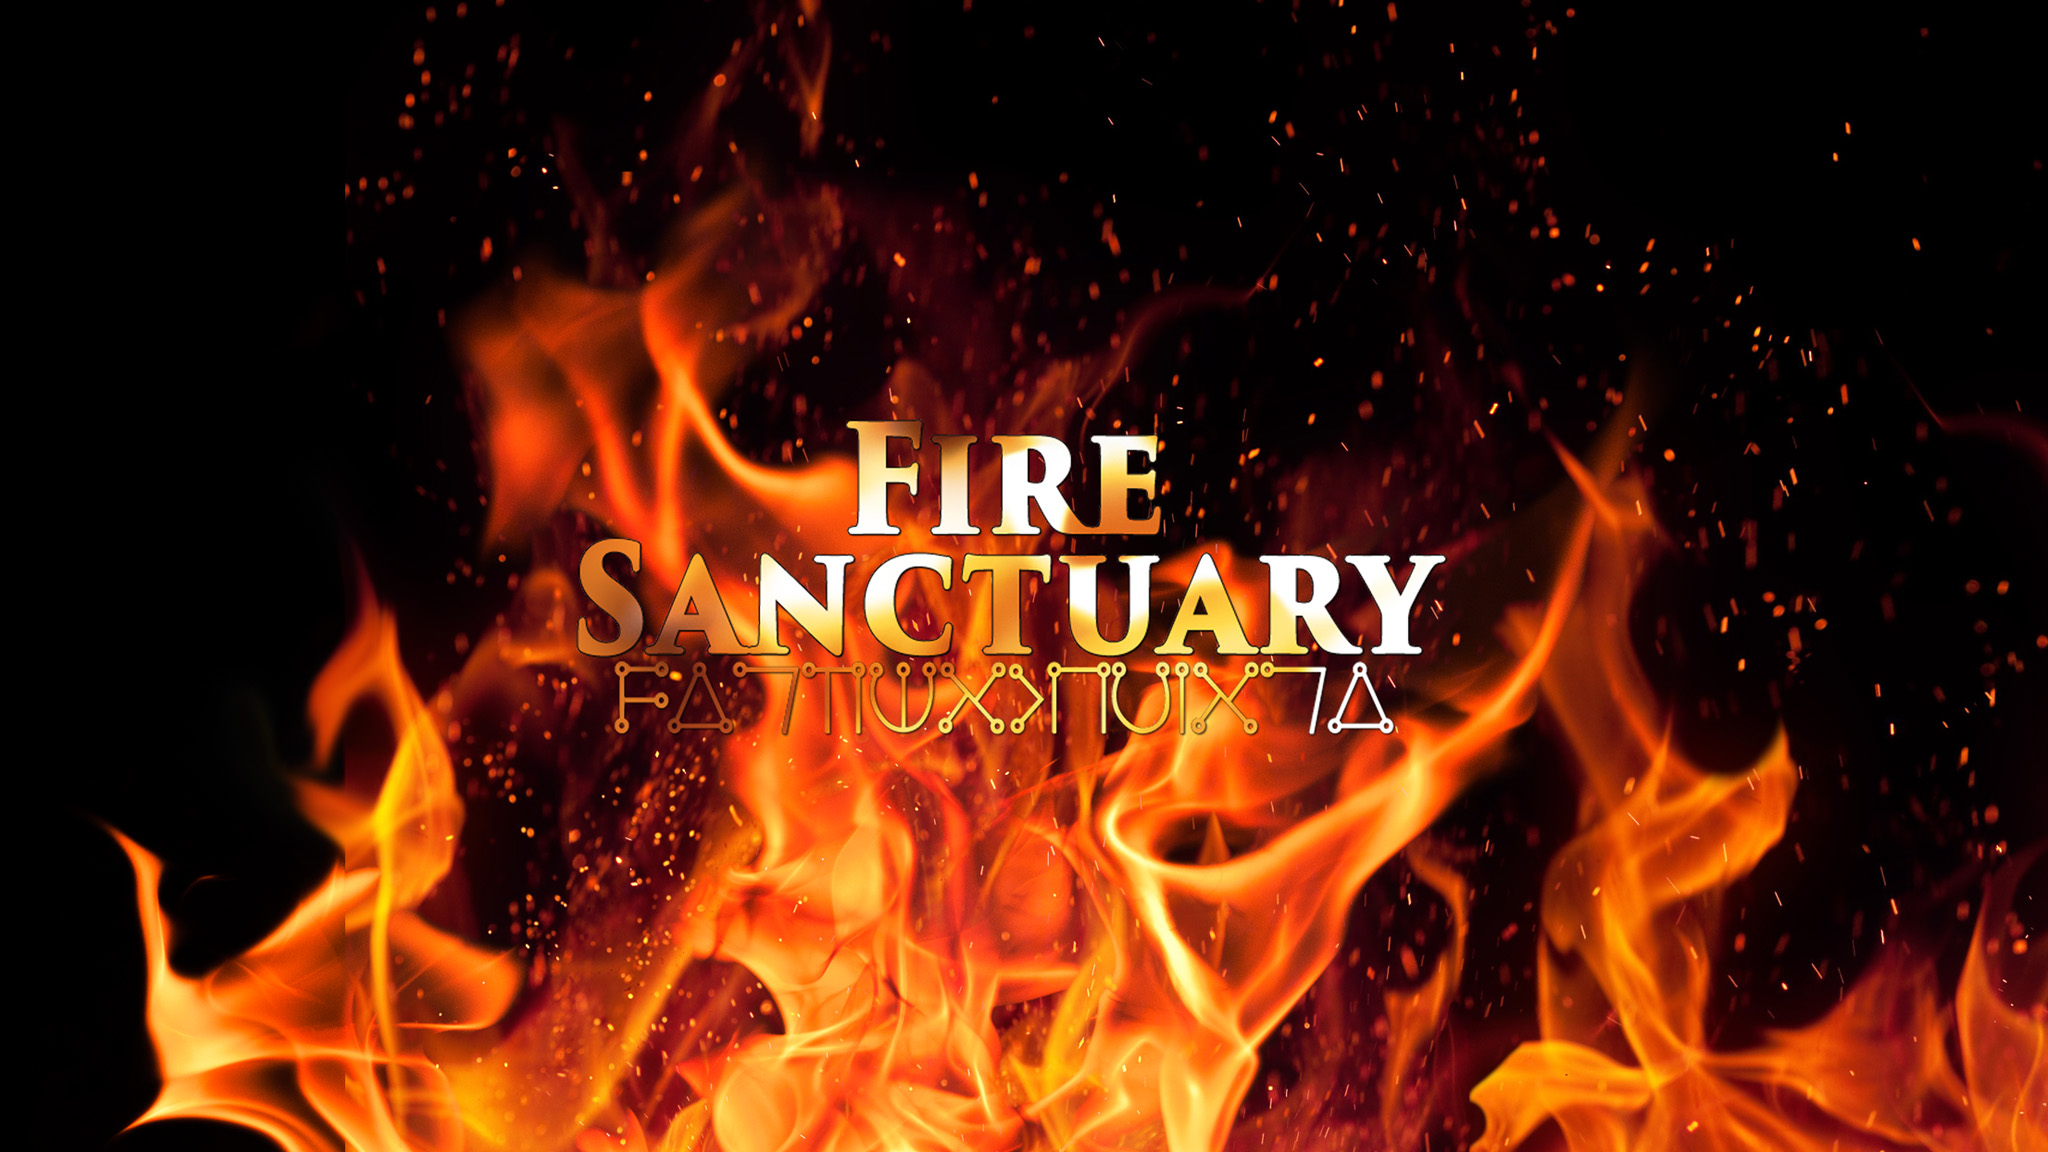 Fire Sanctuary